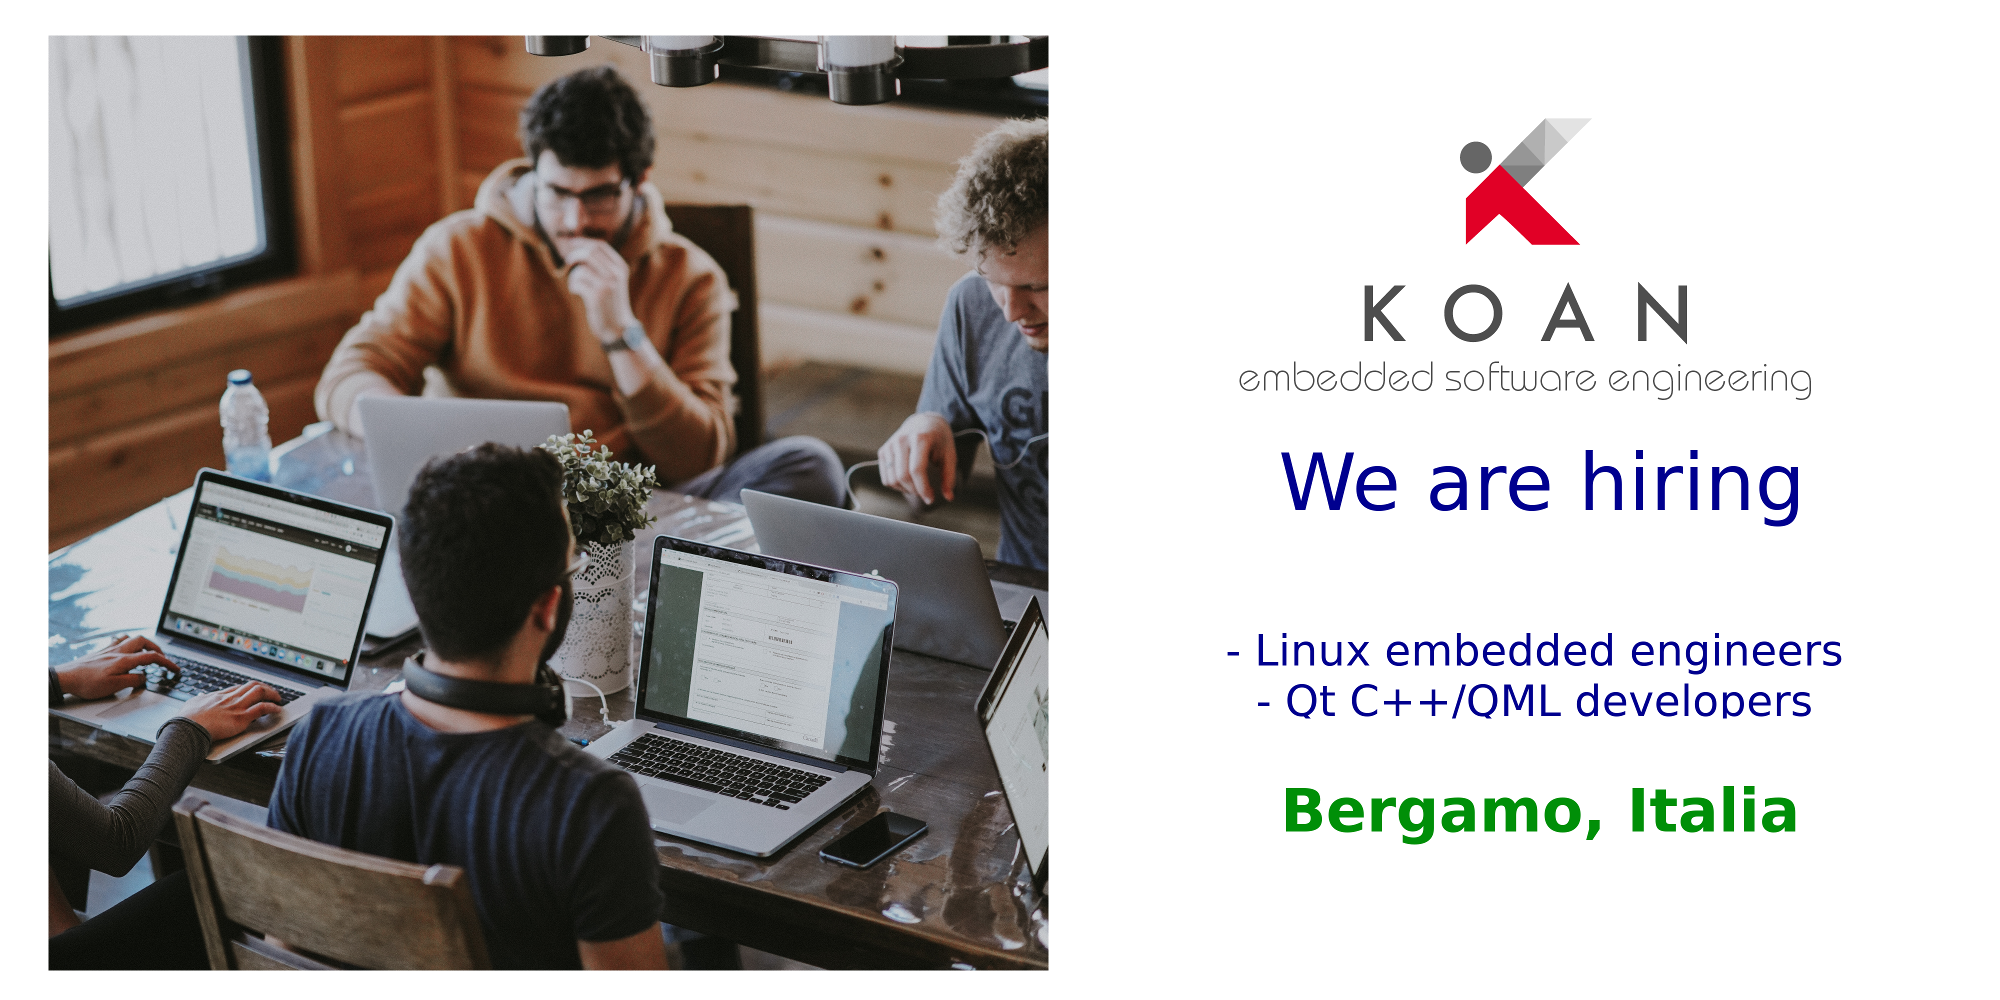 Koan hiring linux developers